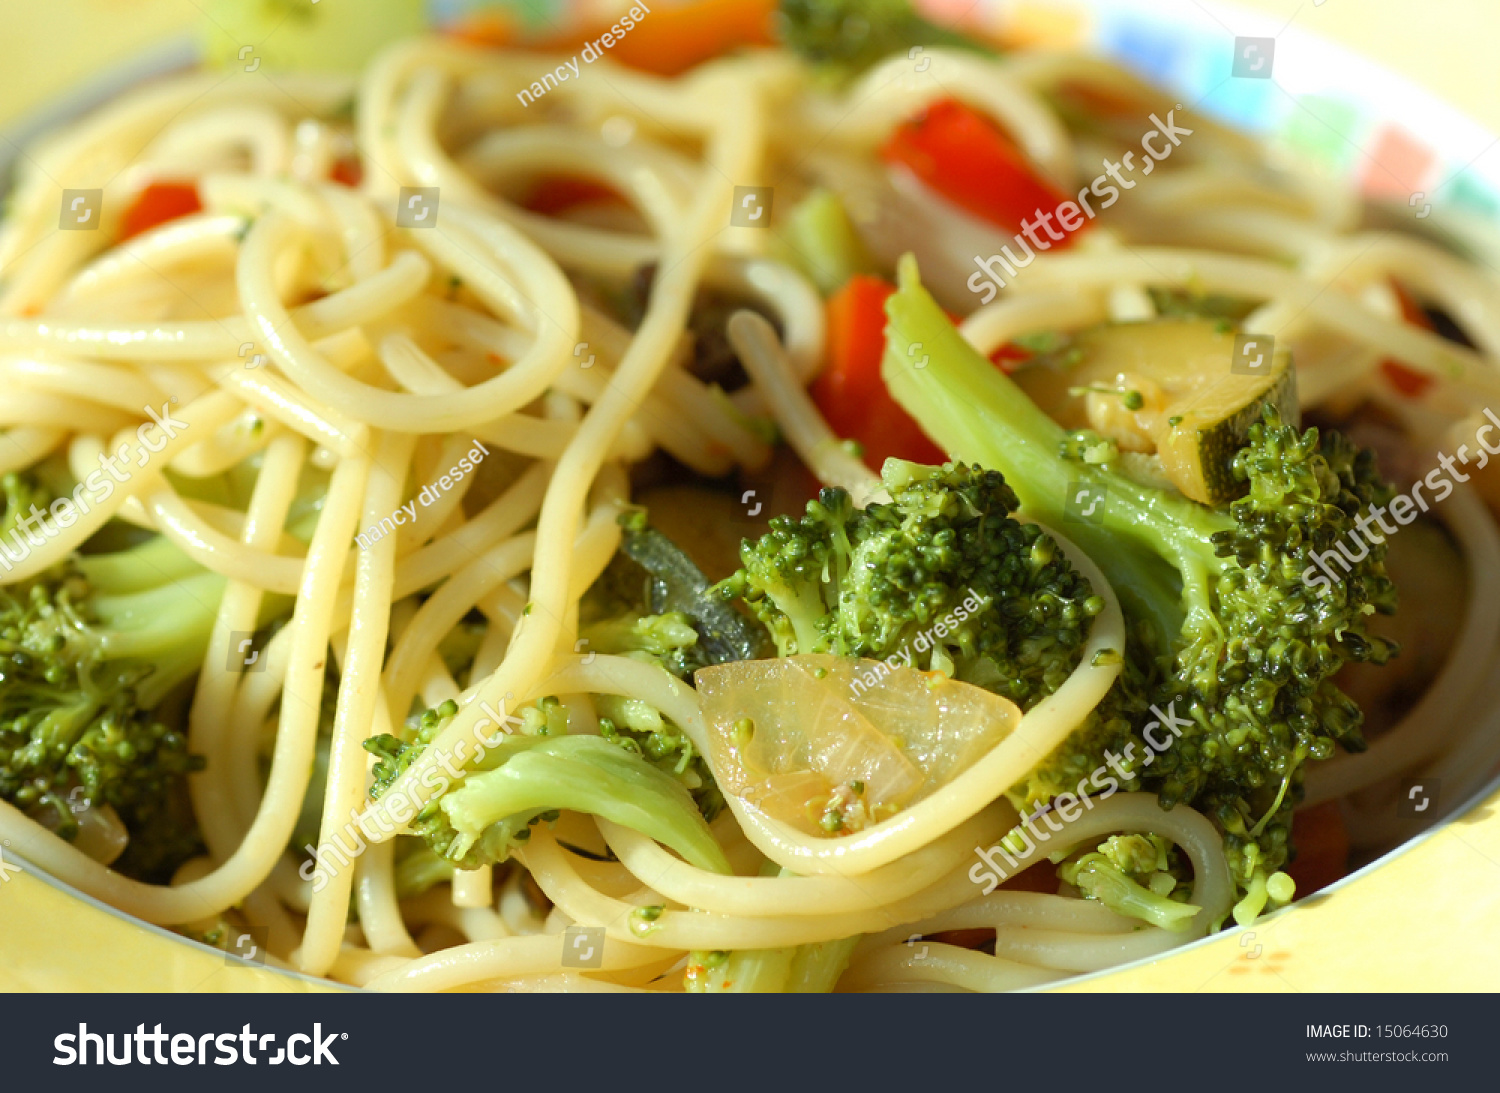 Low Fat Spaghetti Noodles With Delicious And Healthy Vegetables Stock Photo 15064630 : Shutterstock1500 x 1093 jpeg 575kB